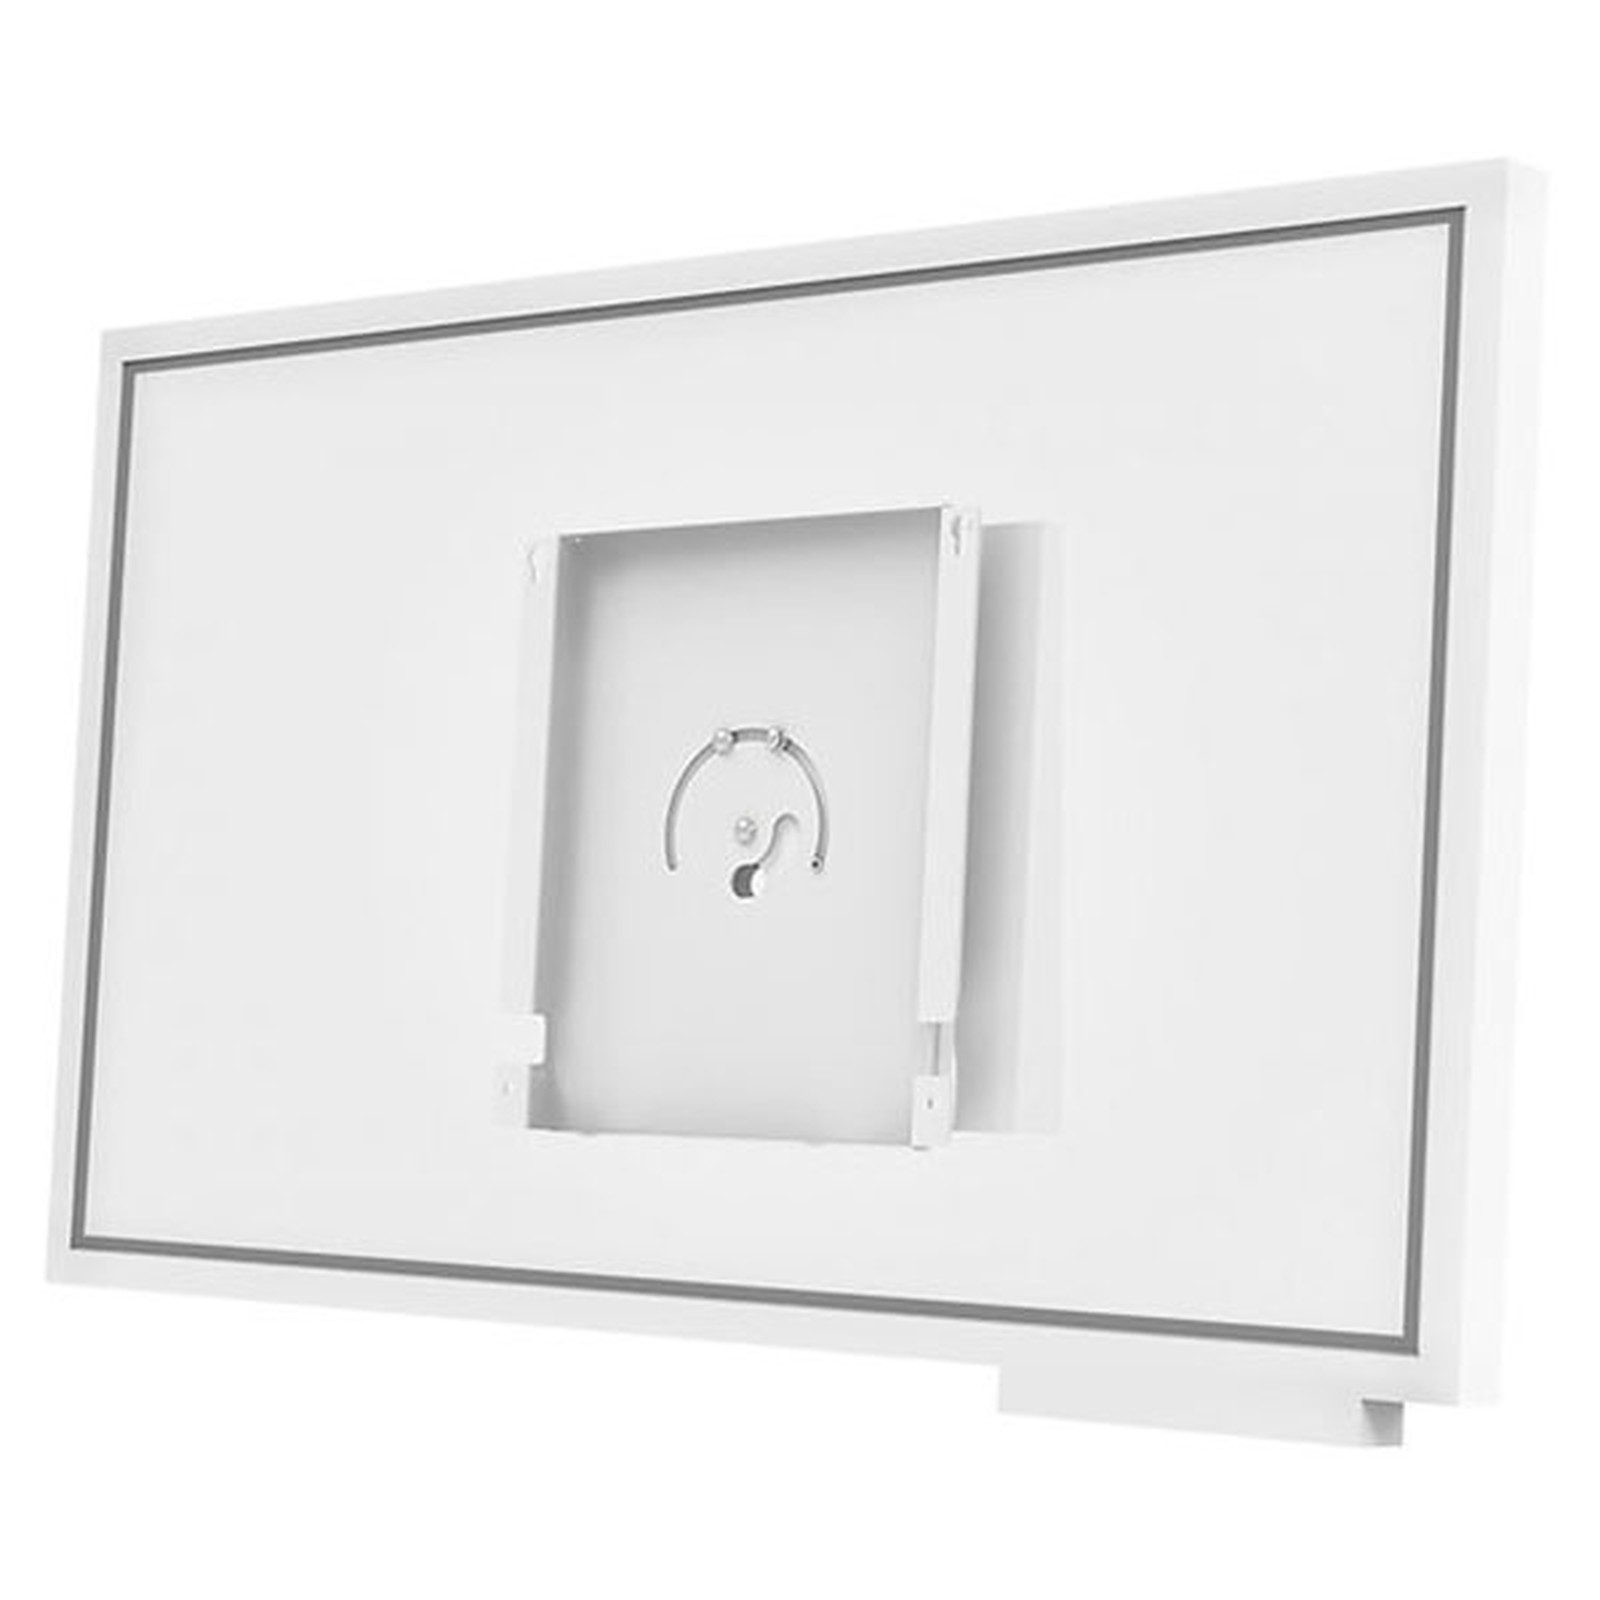 Peerless-AV Rotational Wall Mount RMI3-FLIP